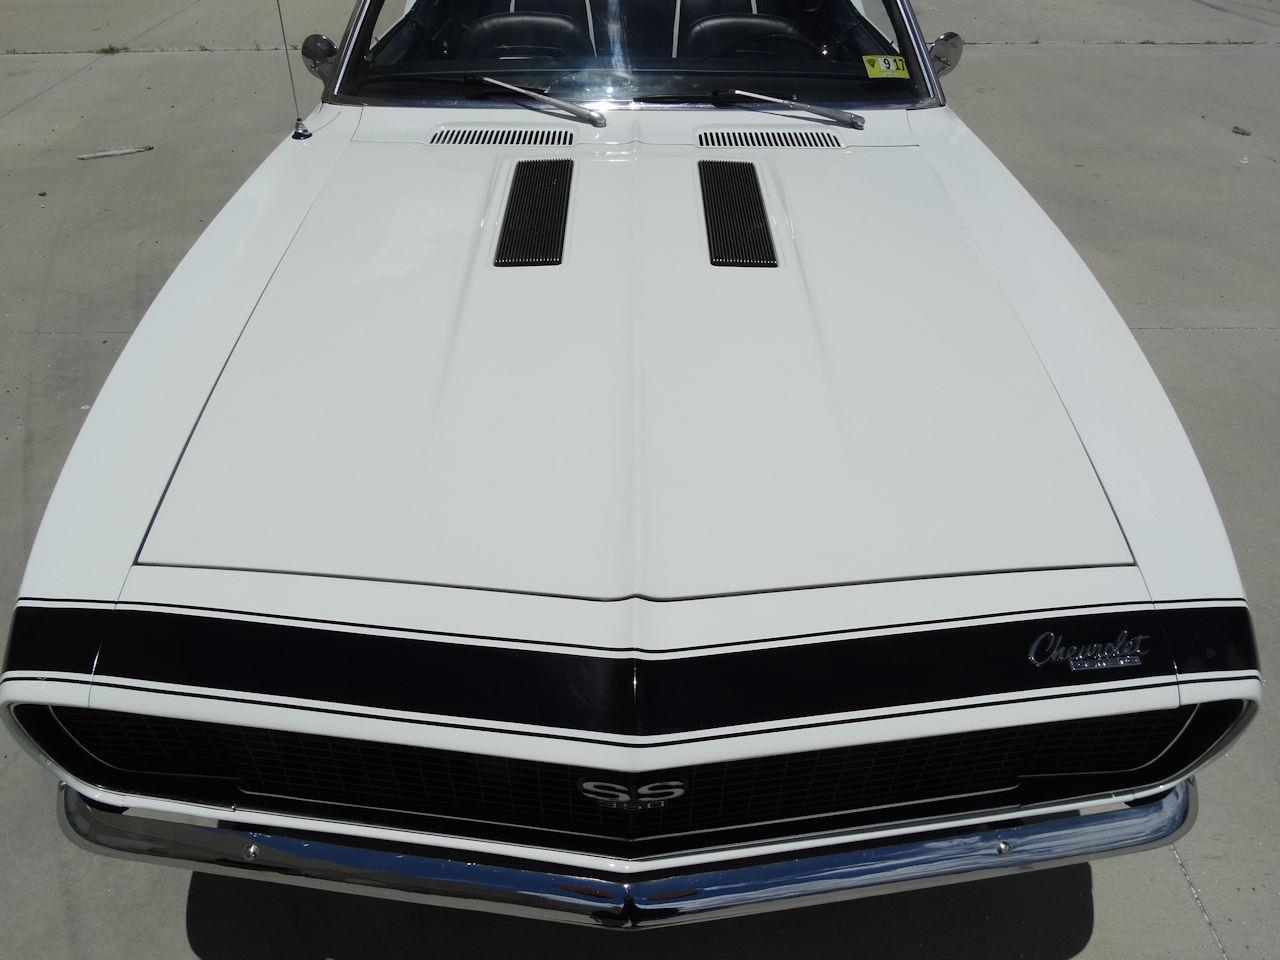 Large Picture of '67 Chevrolet Camaro located in Florida - $39,995.00 Offered by Gateway Classic Cars - Fort Lauderdale - LH15